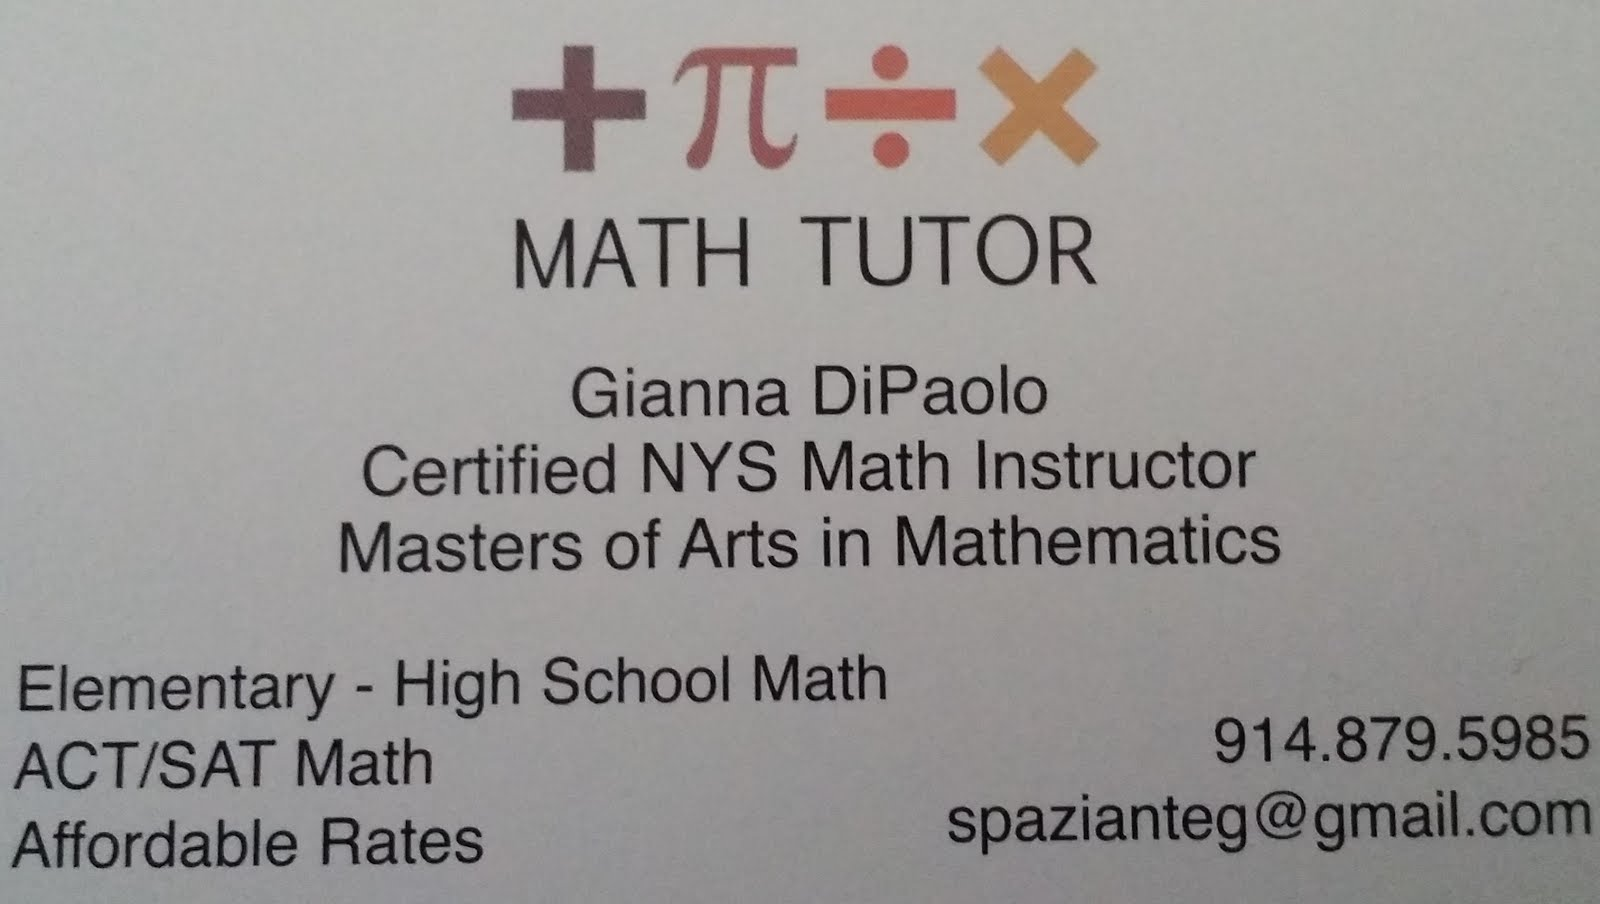 Great Math Tutor!